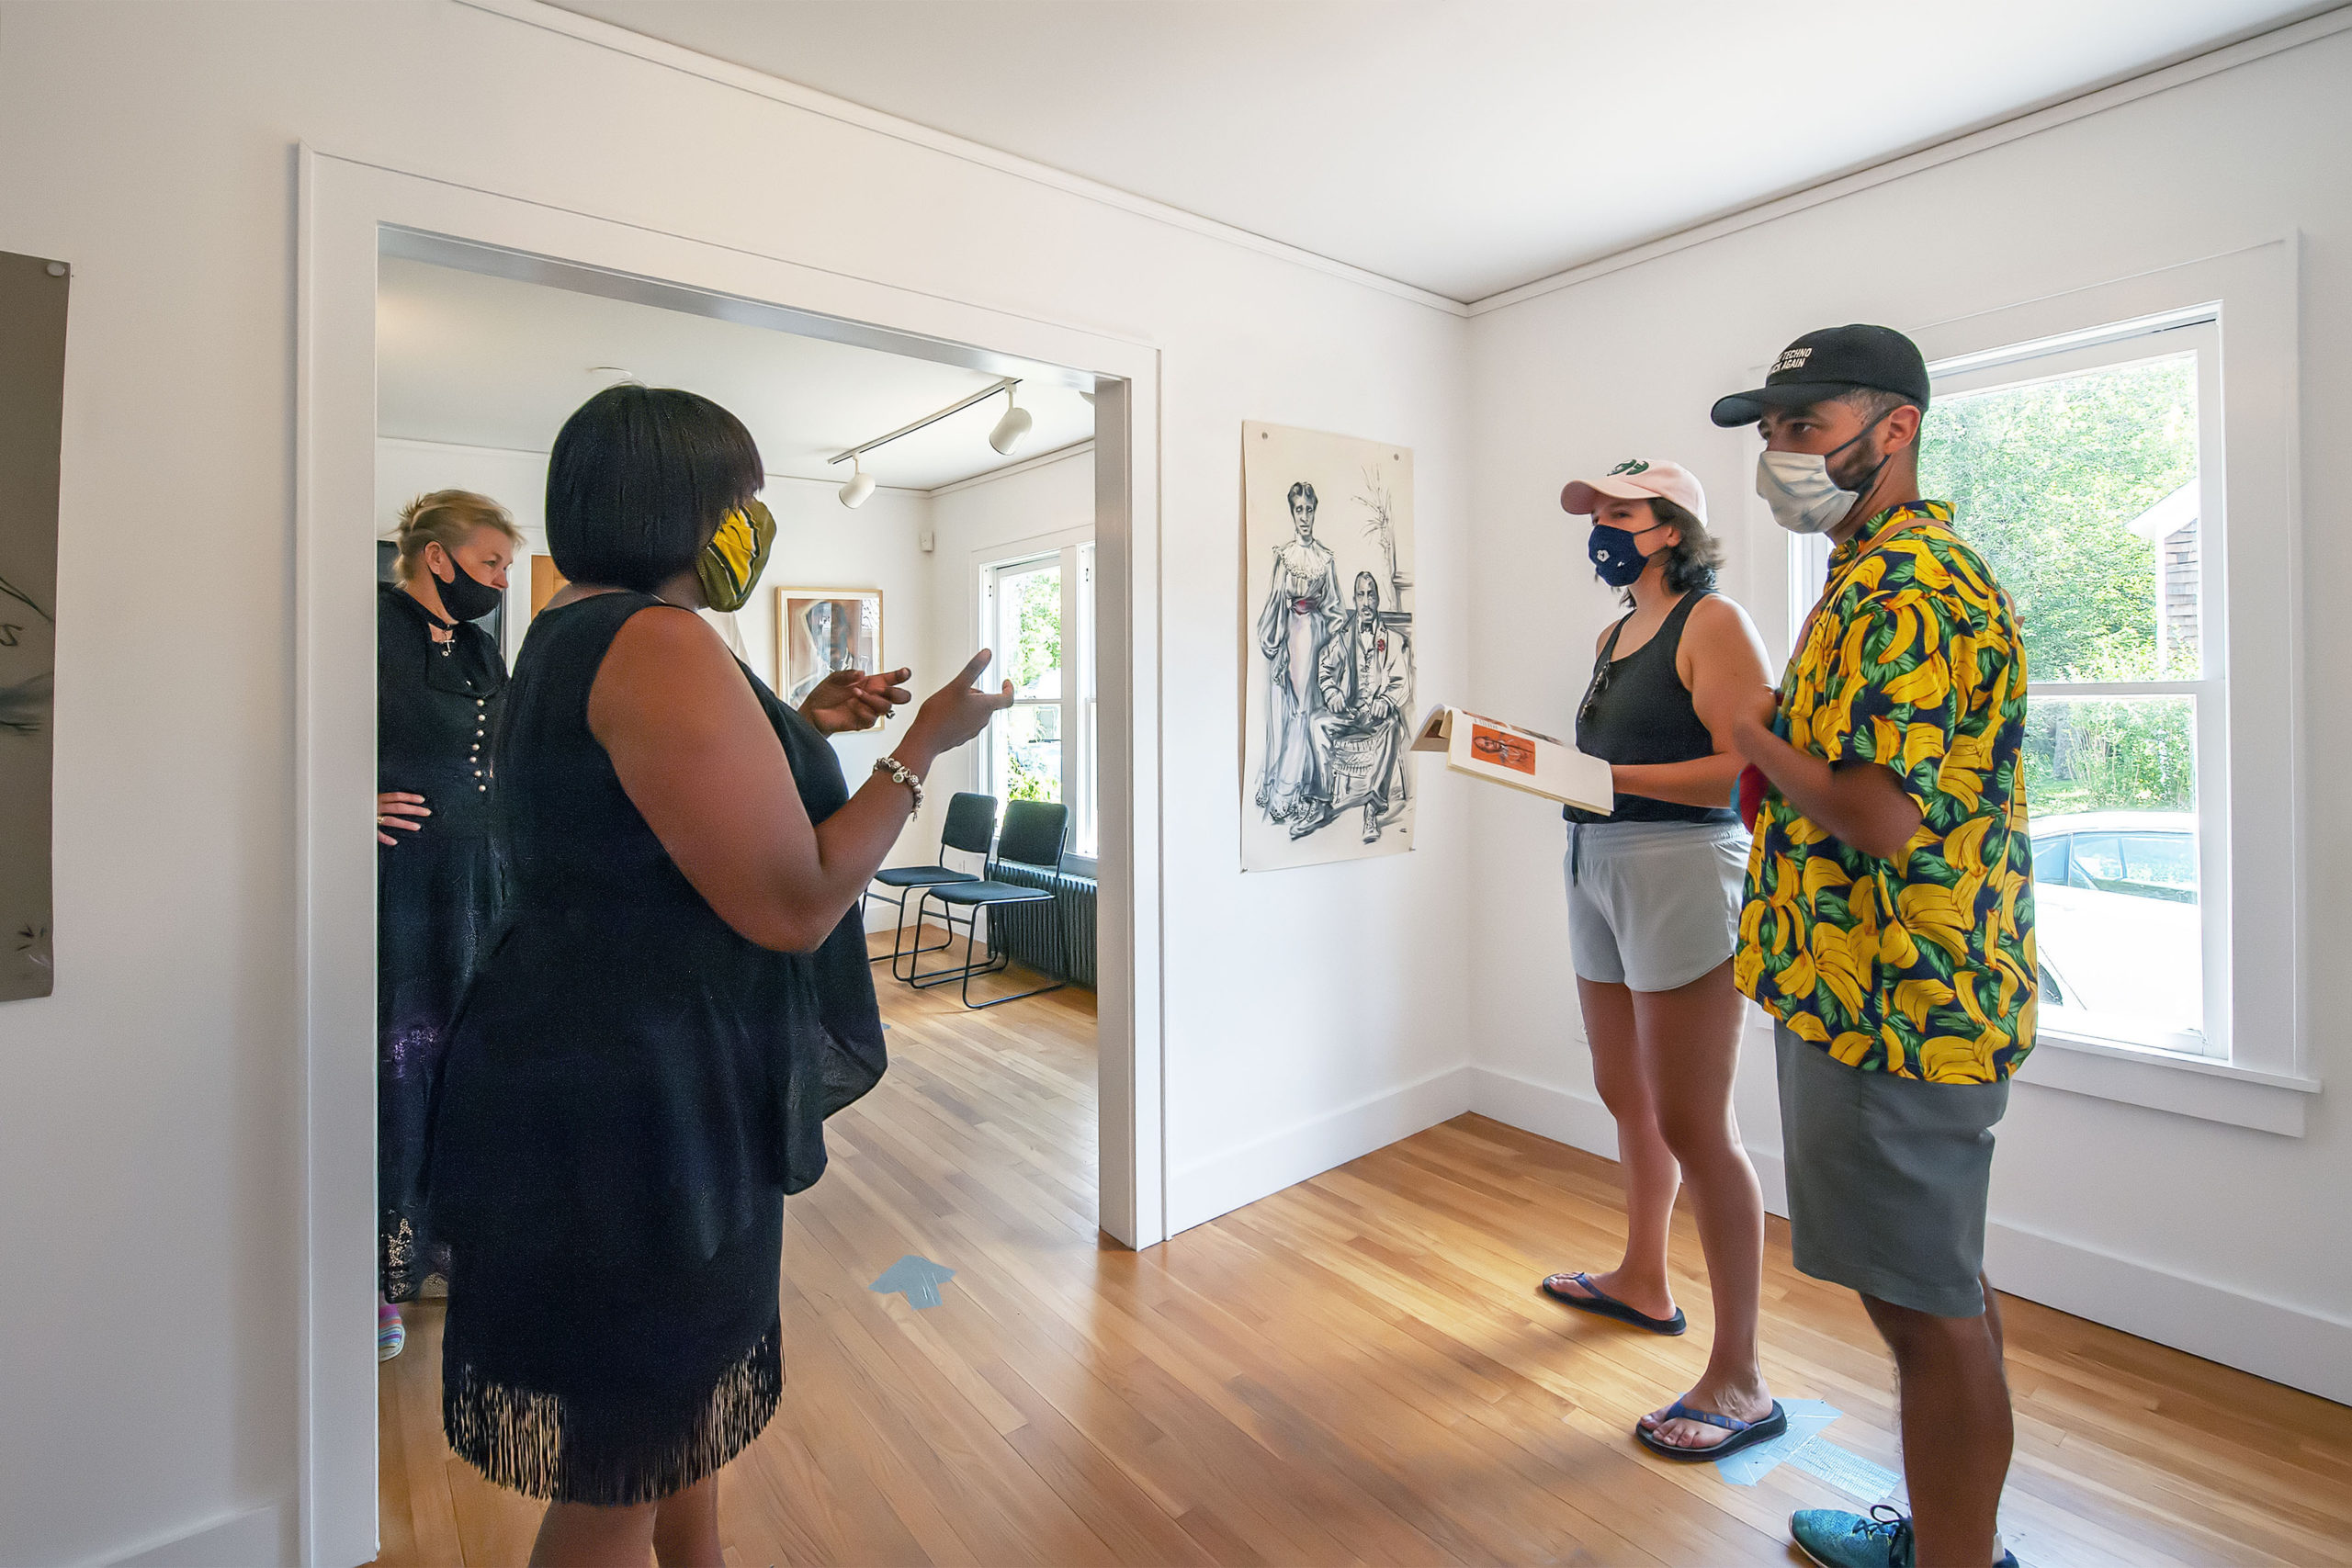 As artist Sabina Streeter looks on AS curator Dr. Georgette Grier of the Eastville Historical Society speaks about her artwork to visitors just prior to the opening of her exhibition at the Society's Heritage House on Saturday.   MICHAEL HELLER